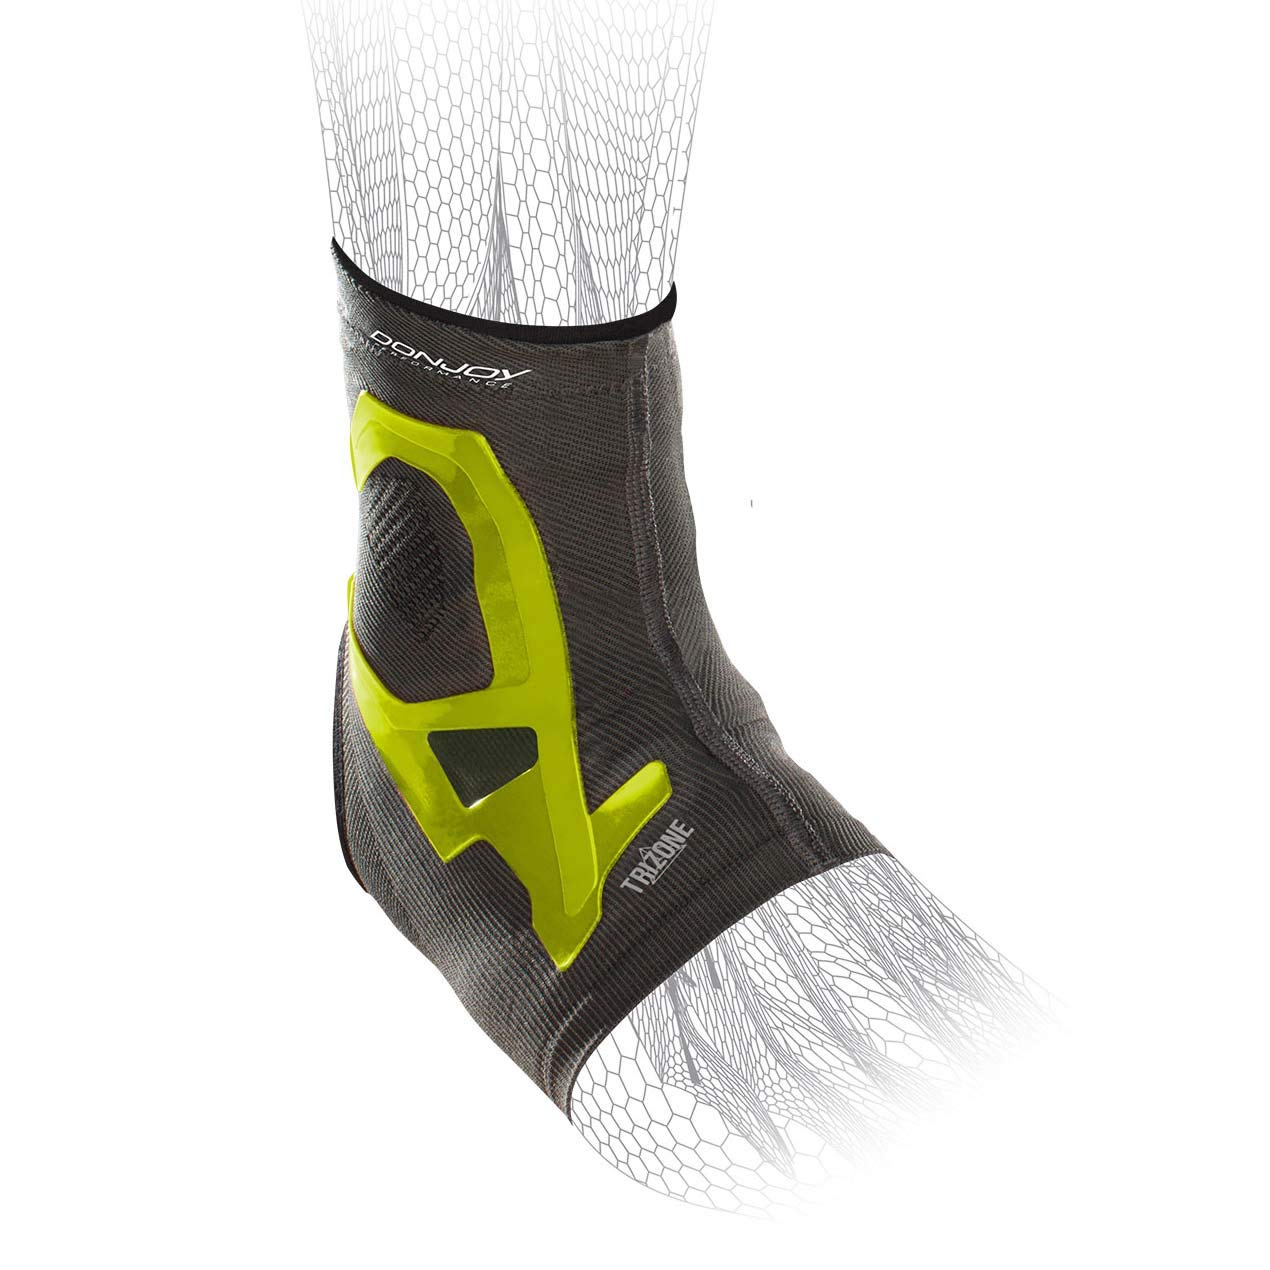 DonJoy Performance TRIZONE Compression: Ankle Support Brace, Slime Green, Large